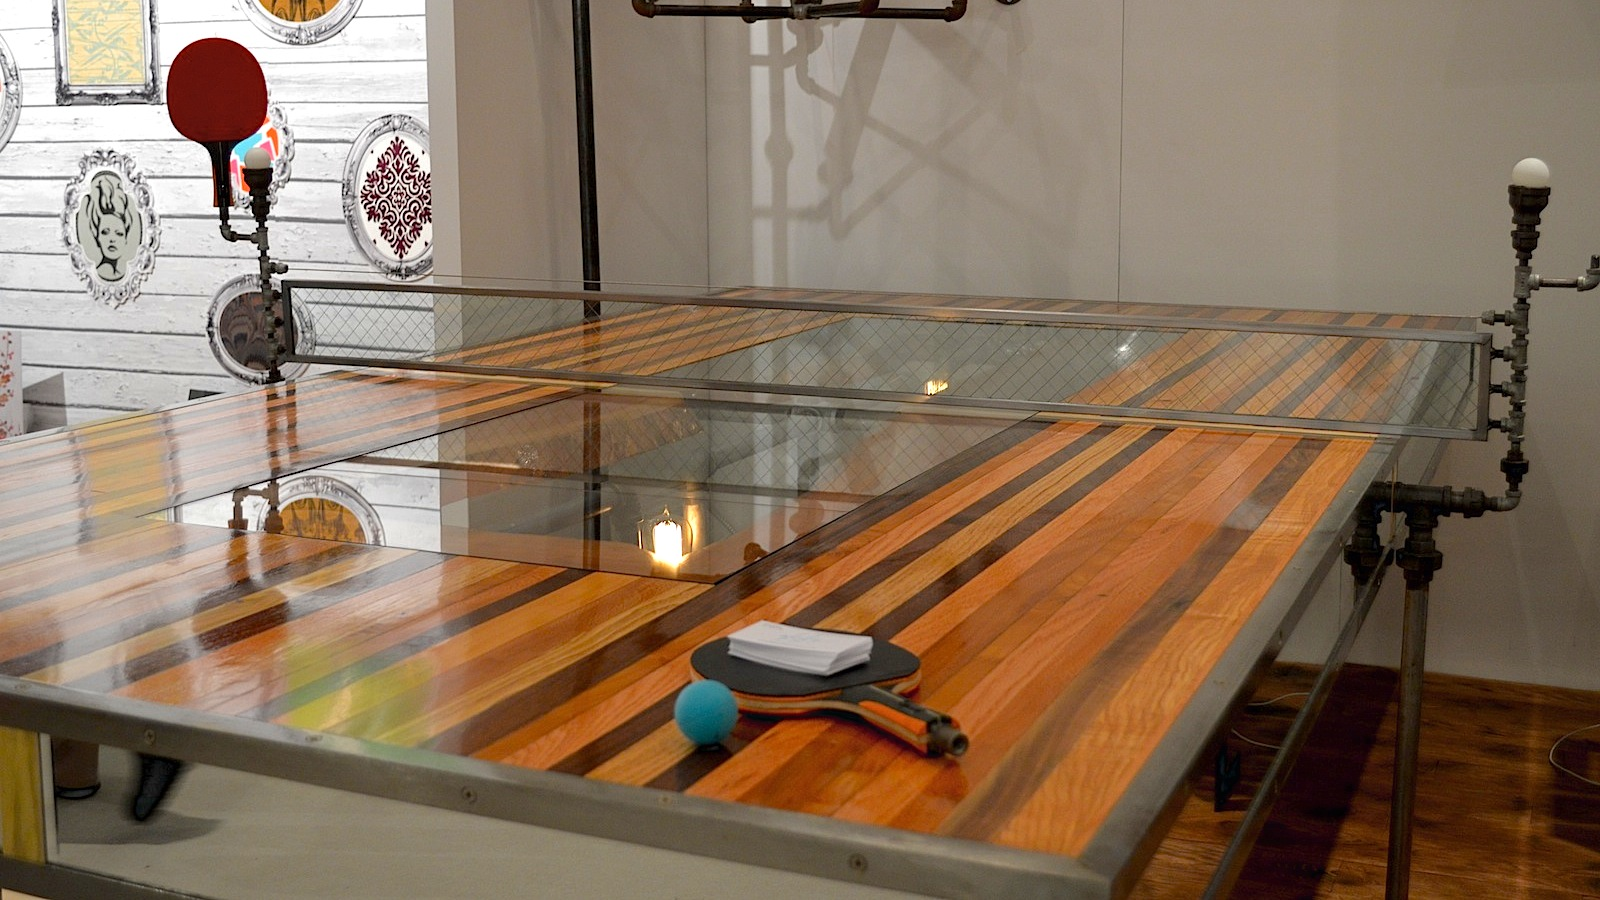 Charmant This Crazy Ass Ping Pong Table Took 400 Hours To Build